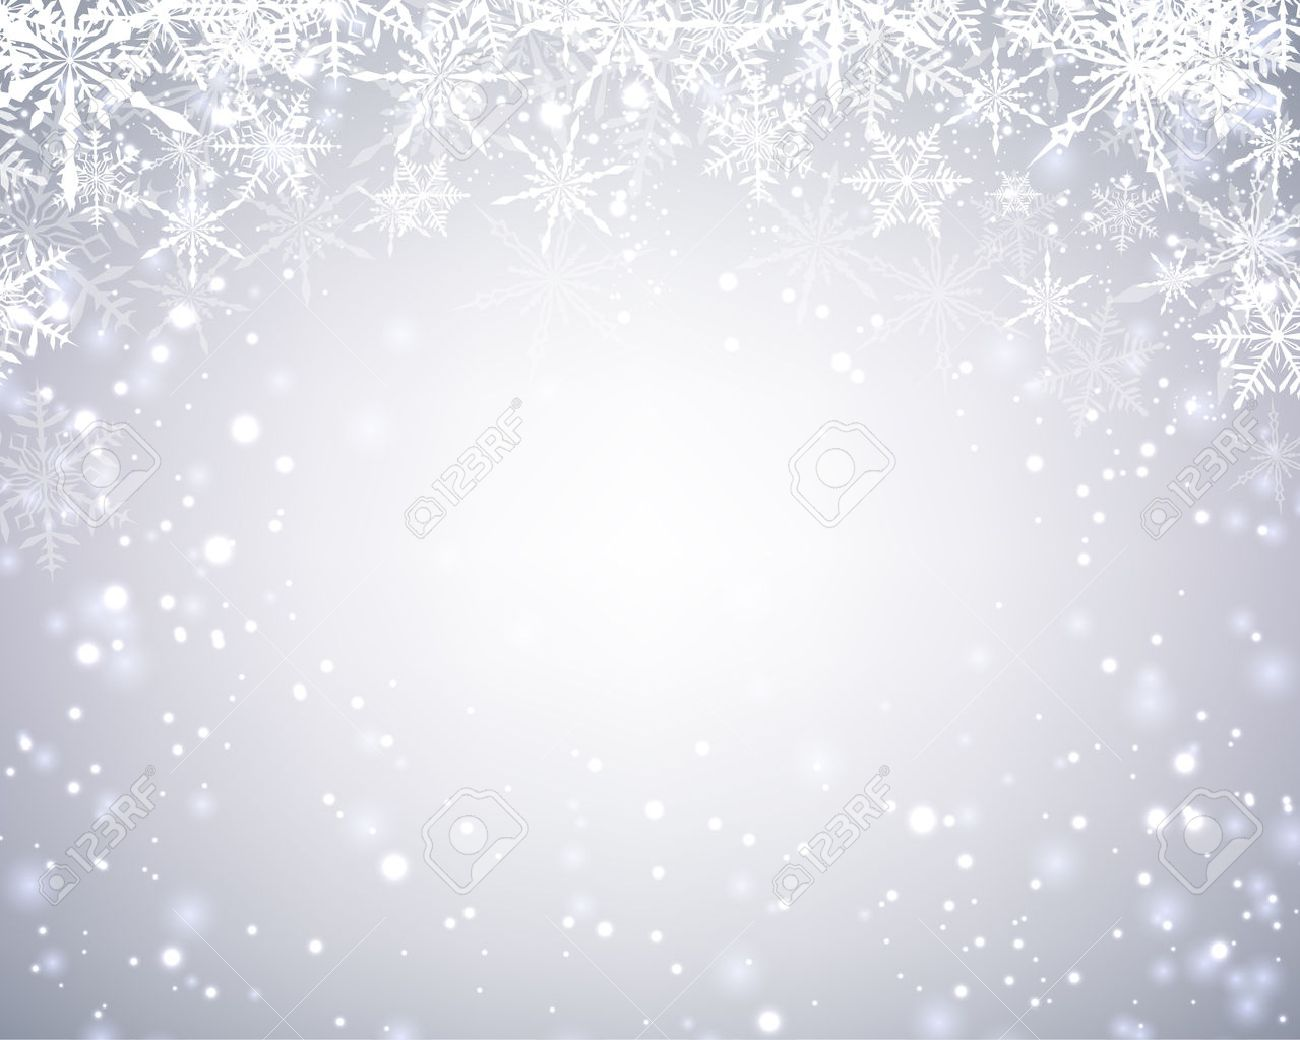 Winter card with snowflakes. Vector paper illustration. - 48364946